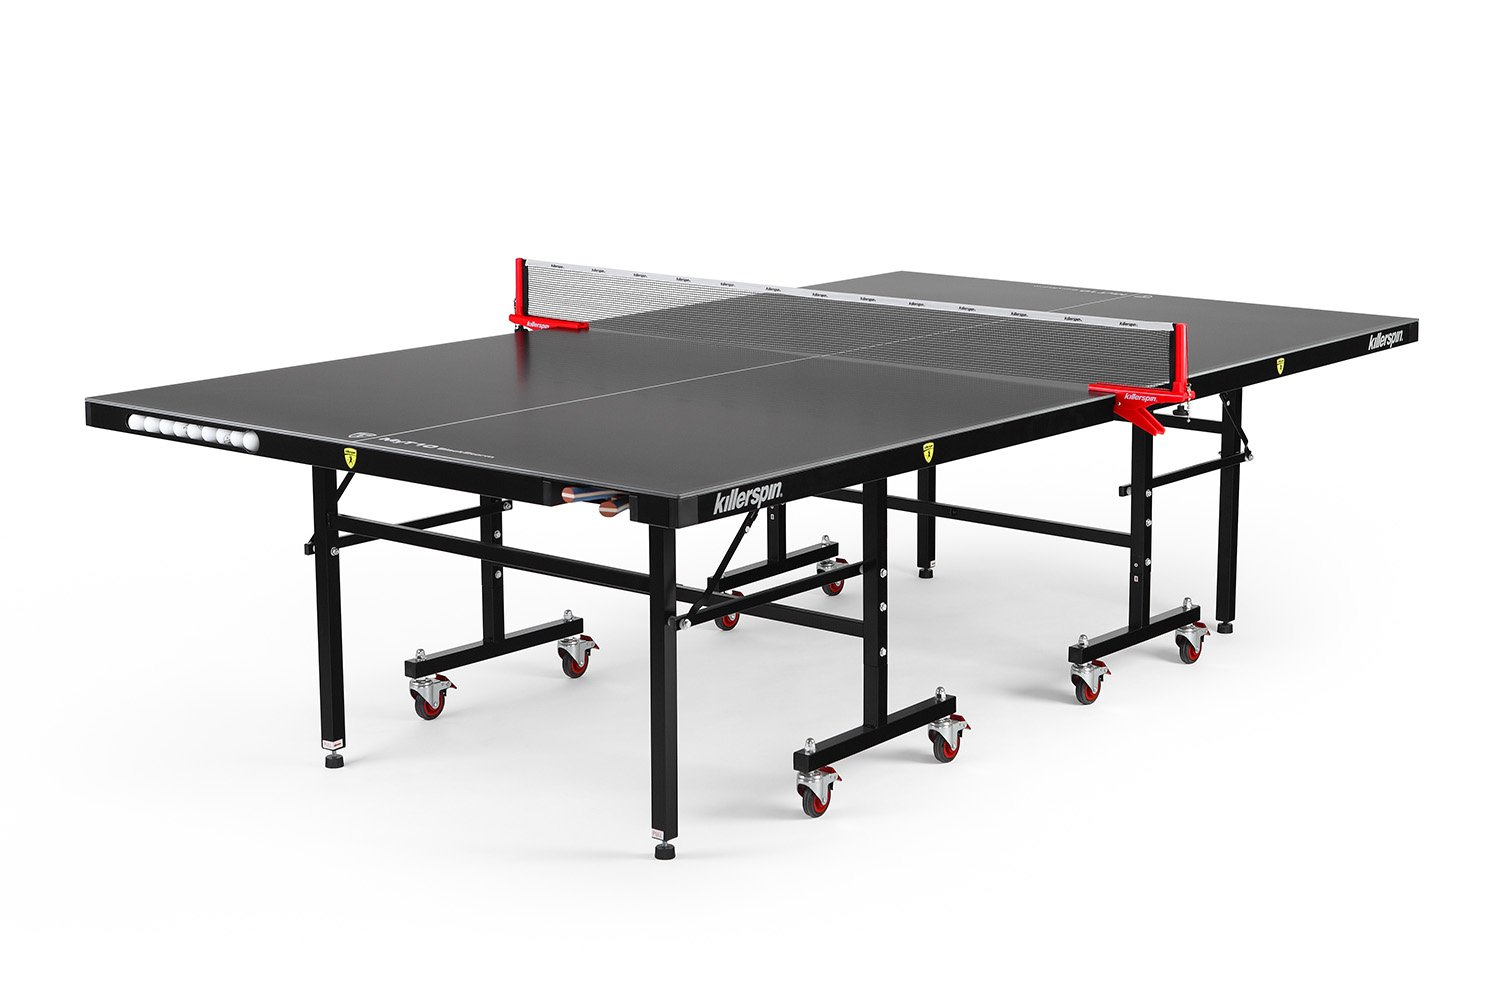 Killerspin MyT10 Blackstorm Table Tennis Table - Completely Weatherproof, Outdoor Table with Great Performance & Durability